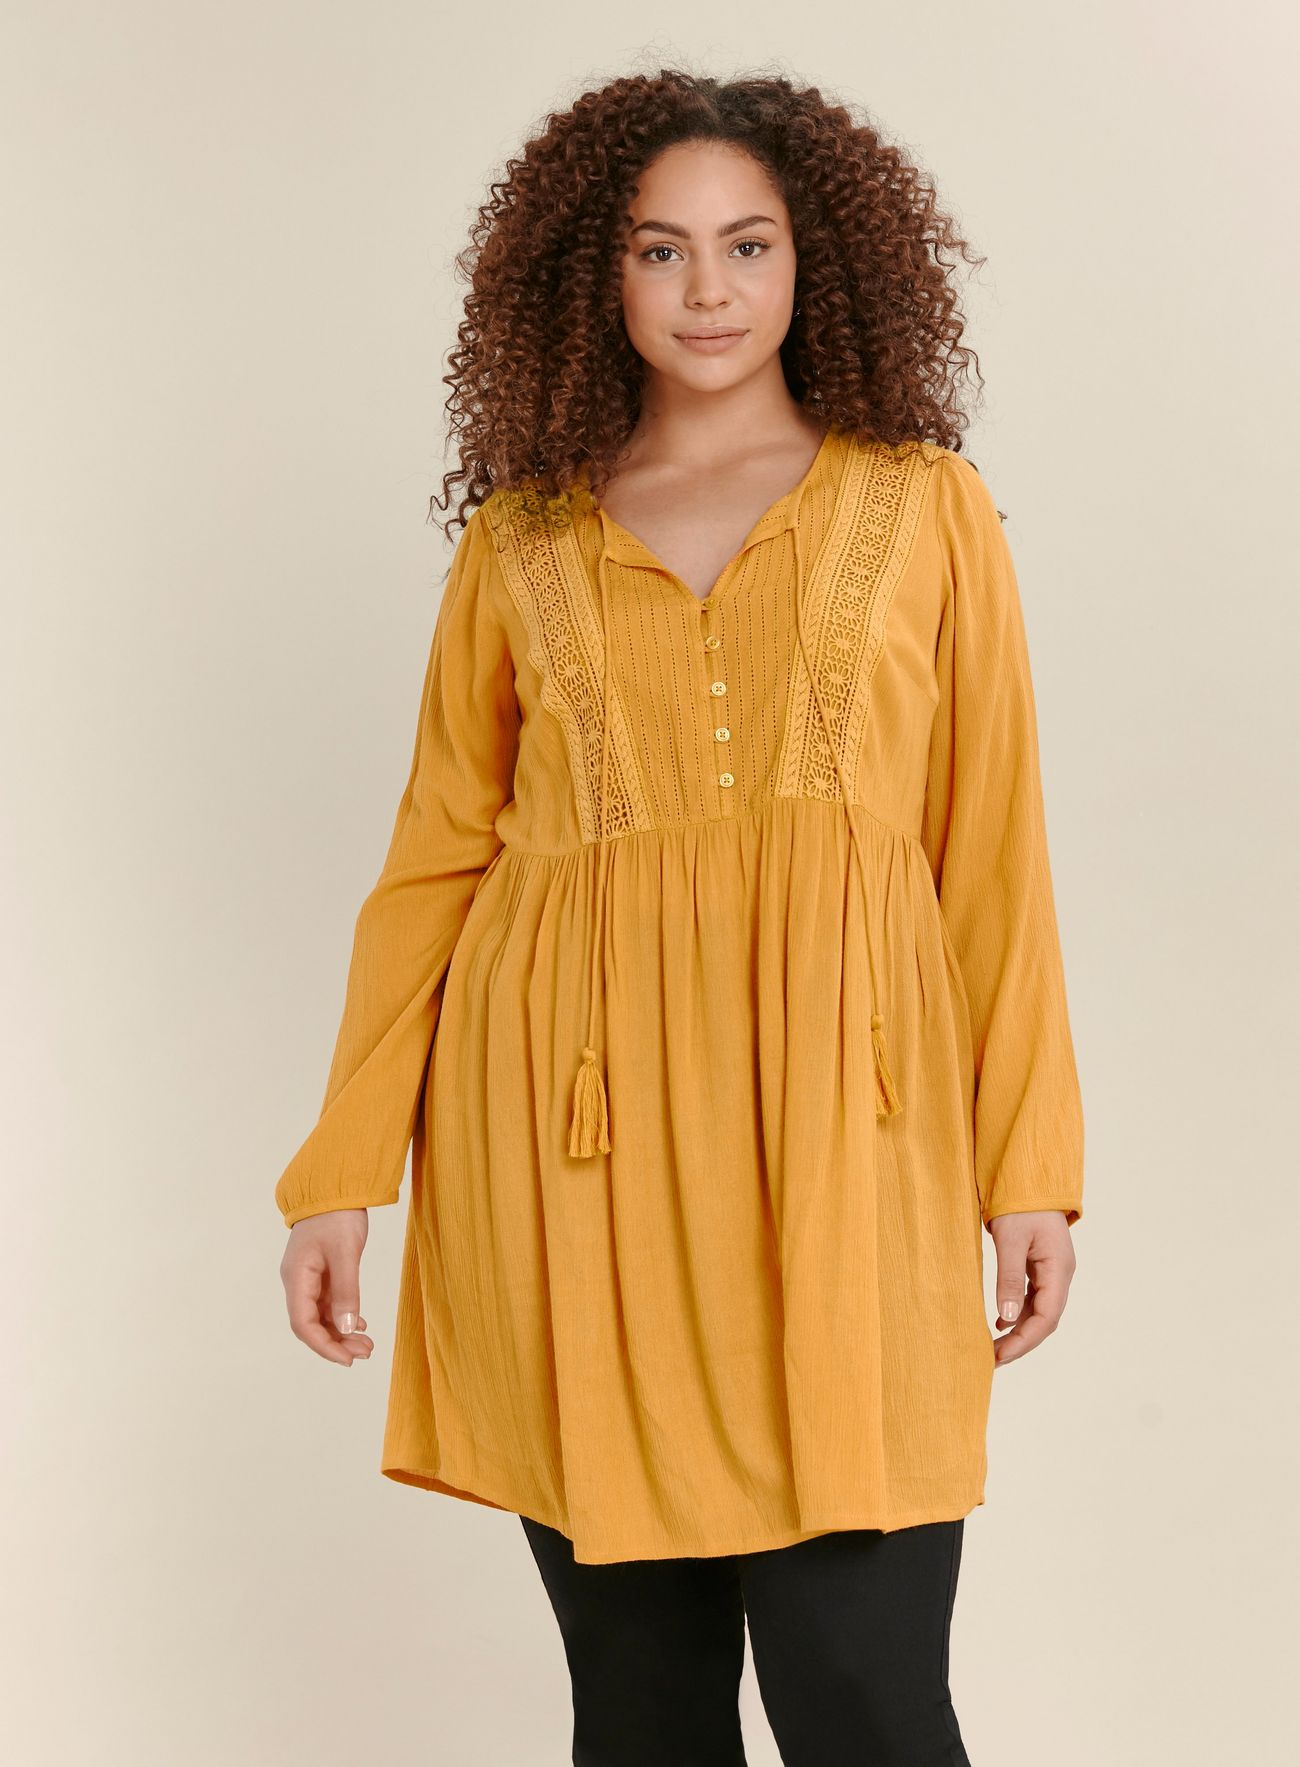 SL1461 Ex Chainstore Ochre Lace Detail Tunic Top x13